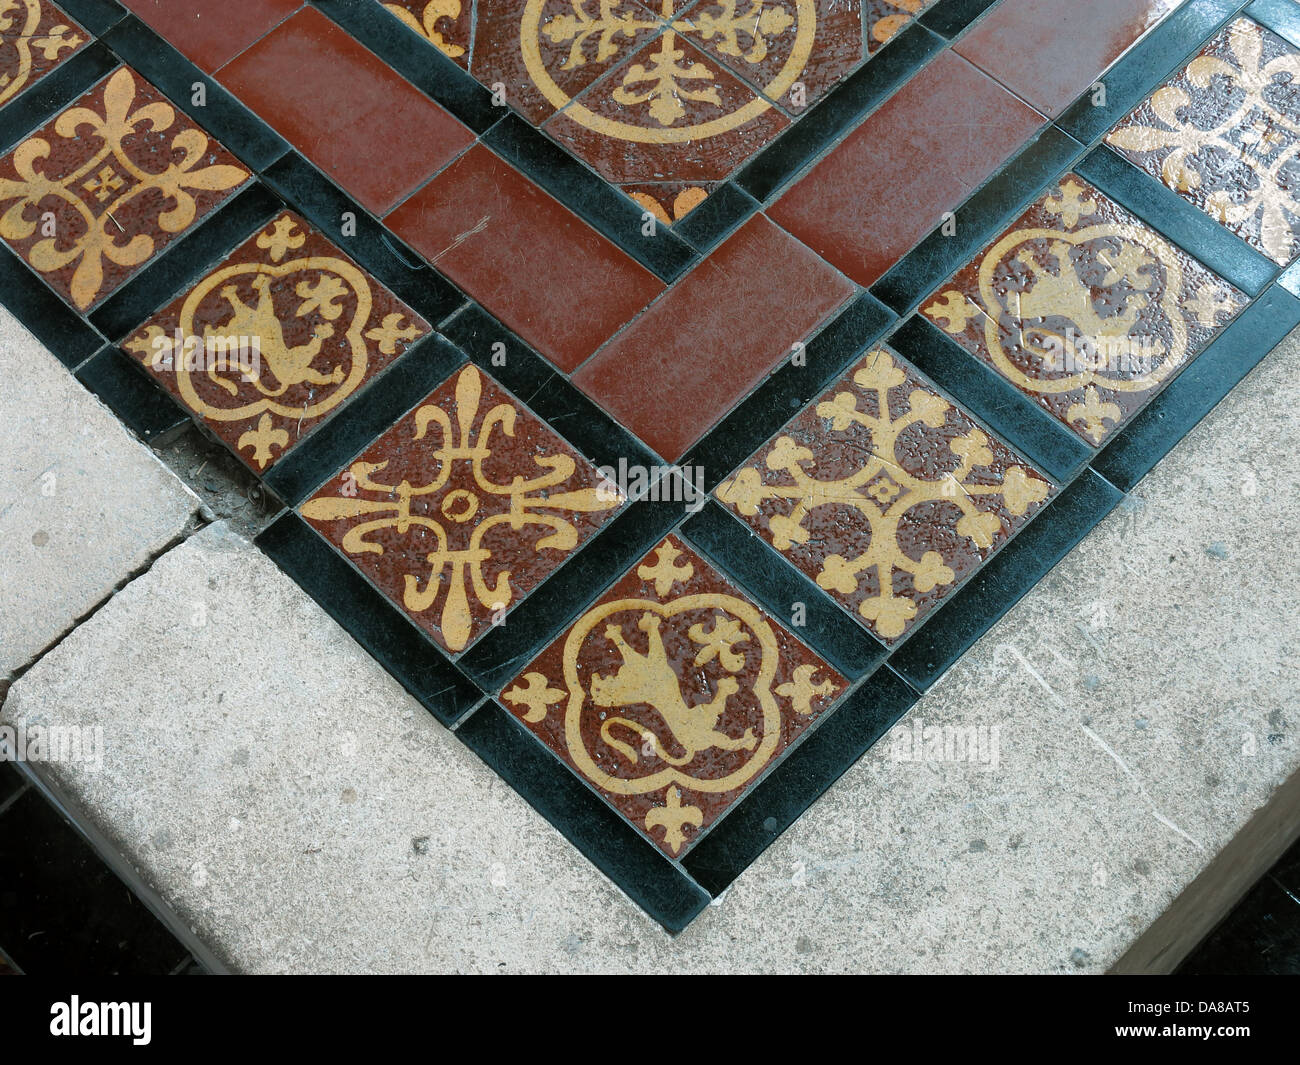 Beautiful,Dorchester,On,Thames,building,interior,of,St,Peter,&,St,Paul,HDR,oxen,oxford,oxfordshire,ancient,monument,Medieval,tiles,on,floor,brown,floortiles,black,near,entrance,detail,designs,Gotonysmith monuments NT,Buy Pictures of,Buy Images Of